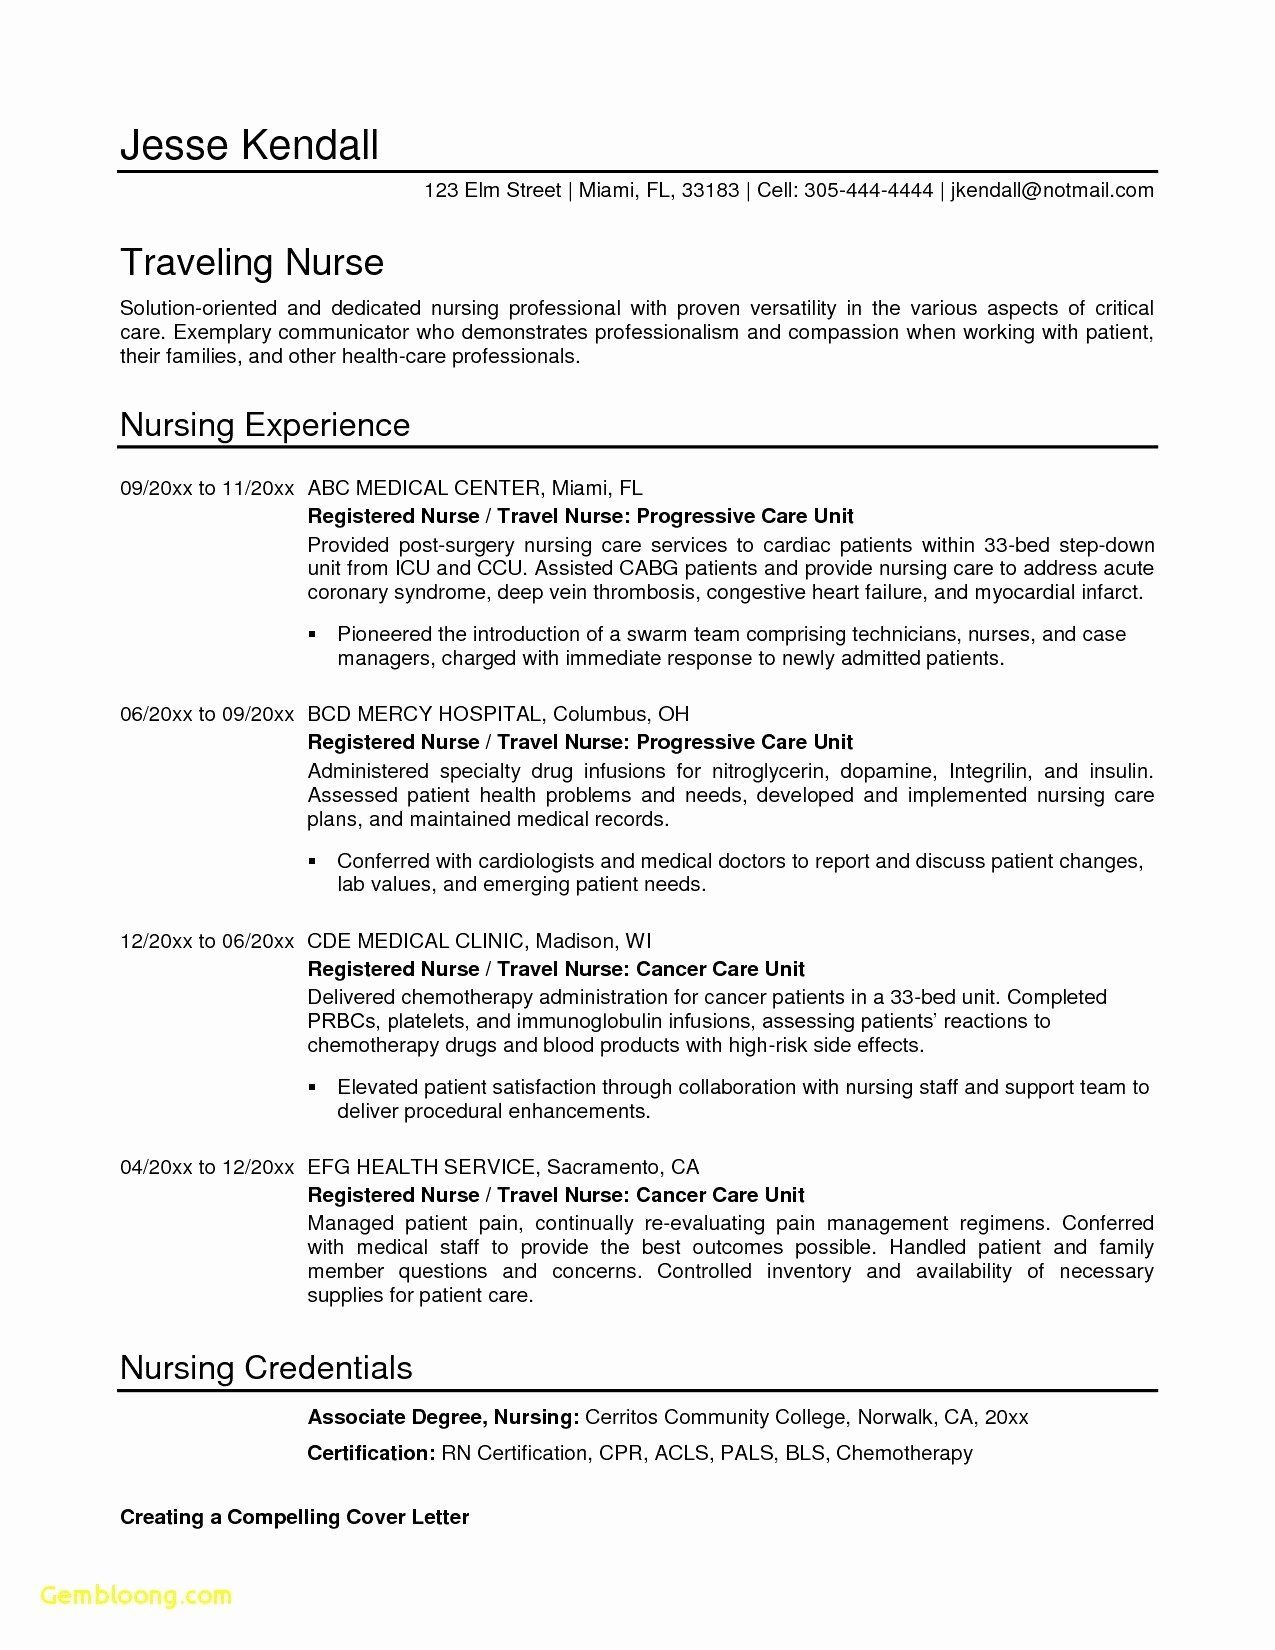 Registered Nurse Cover Letter Template Fresh Letter Collaboration Template Examples Nursing Resume Examples Cover Letter For Resume Nursing Resume